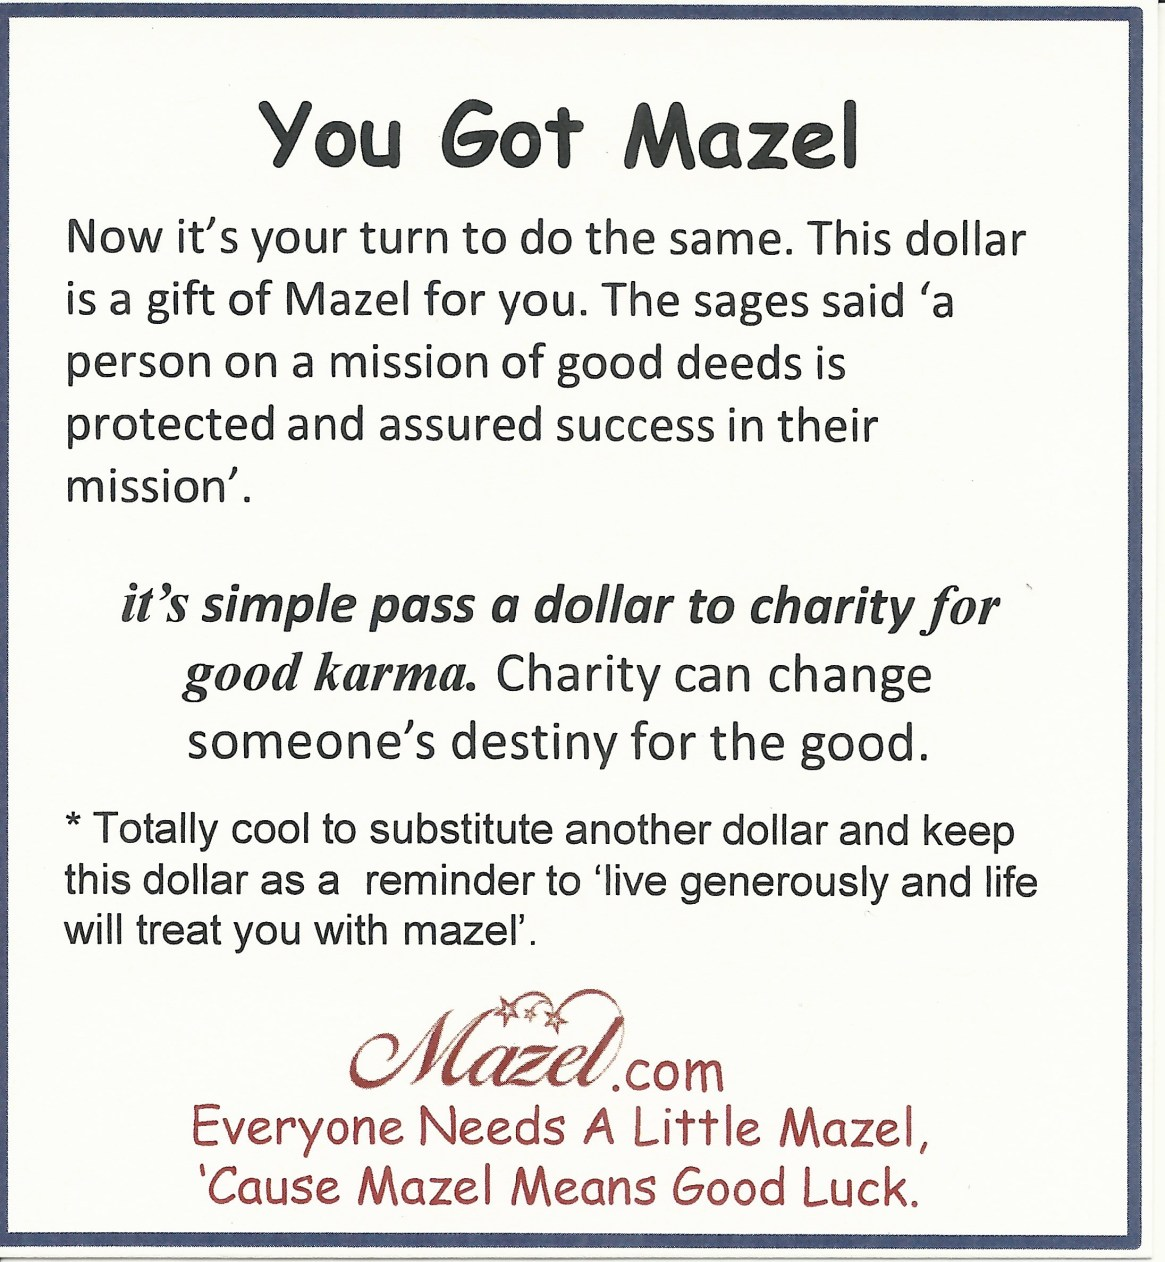 Cause Mazel Means Good Luck